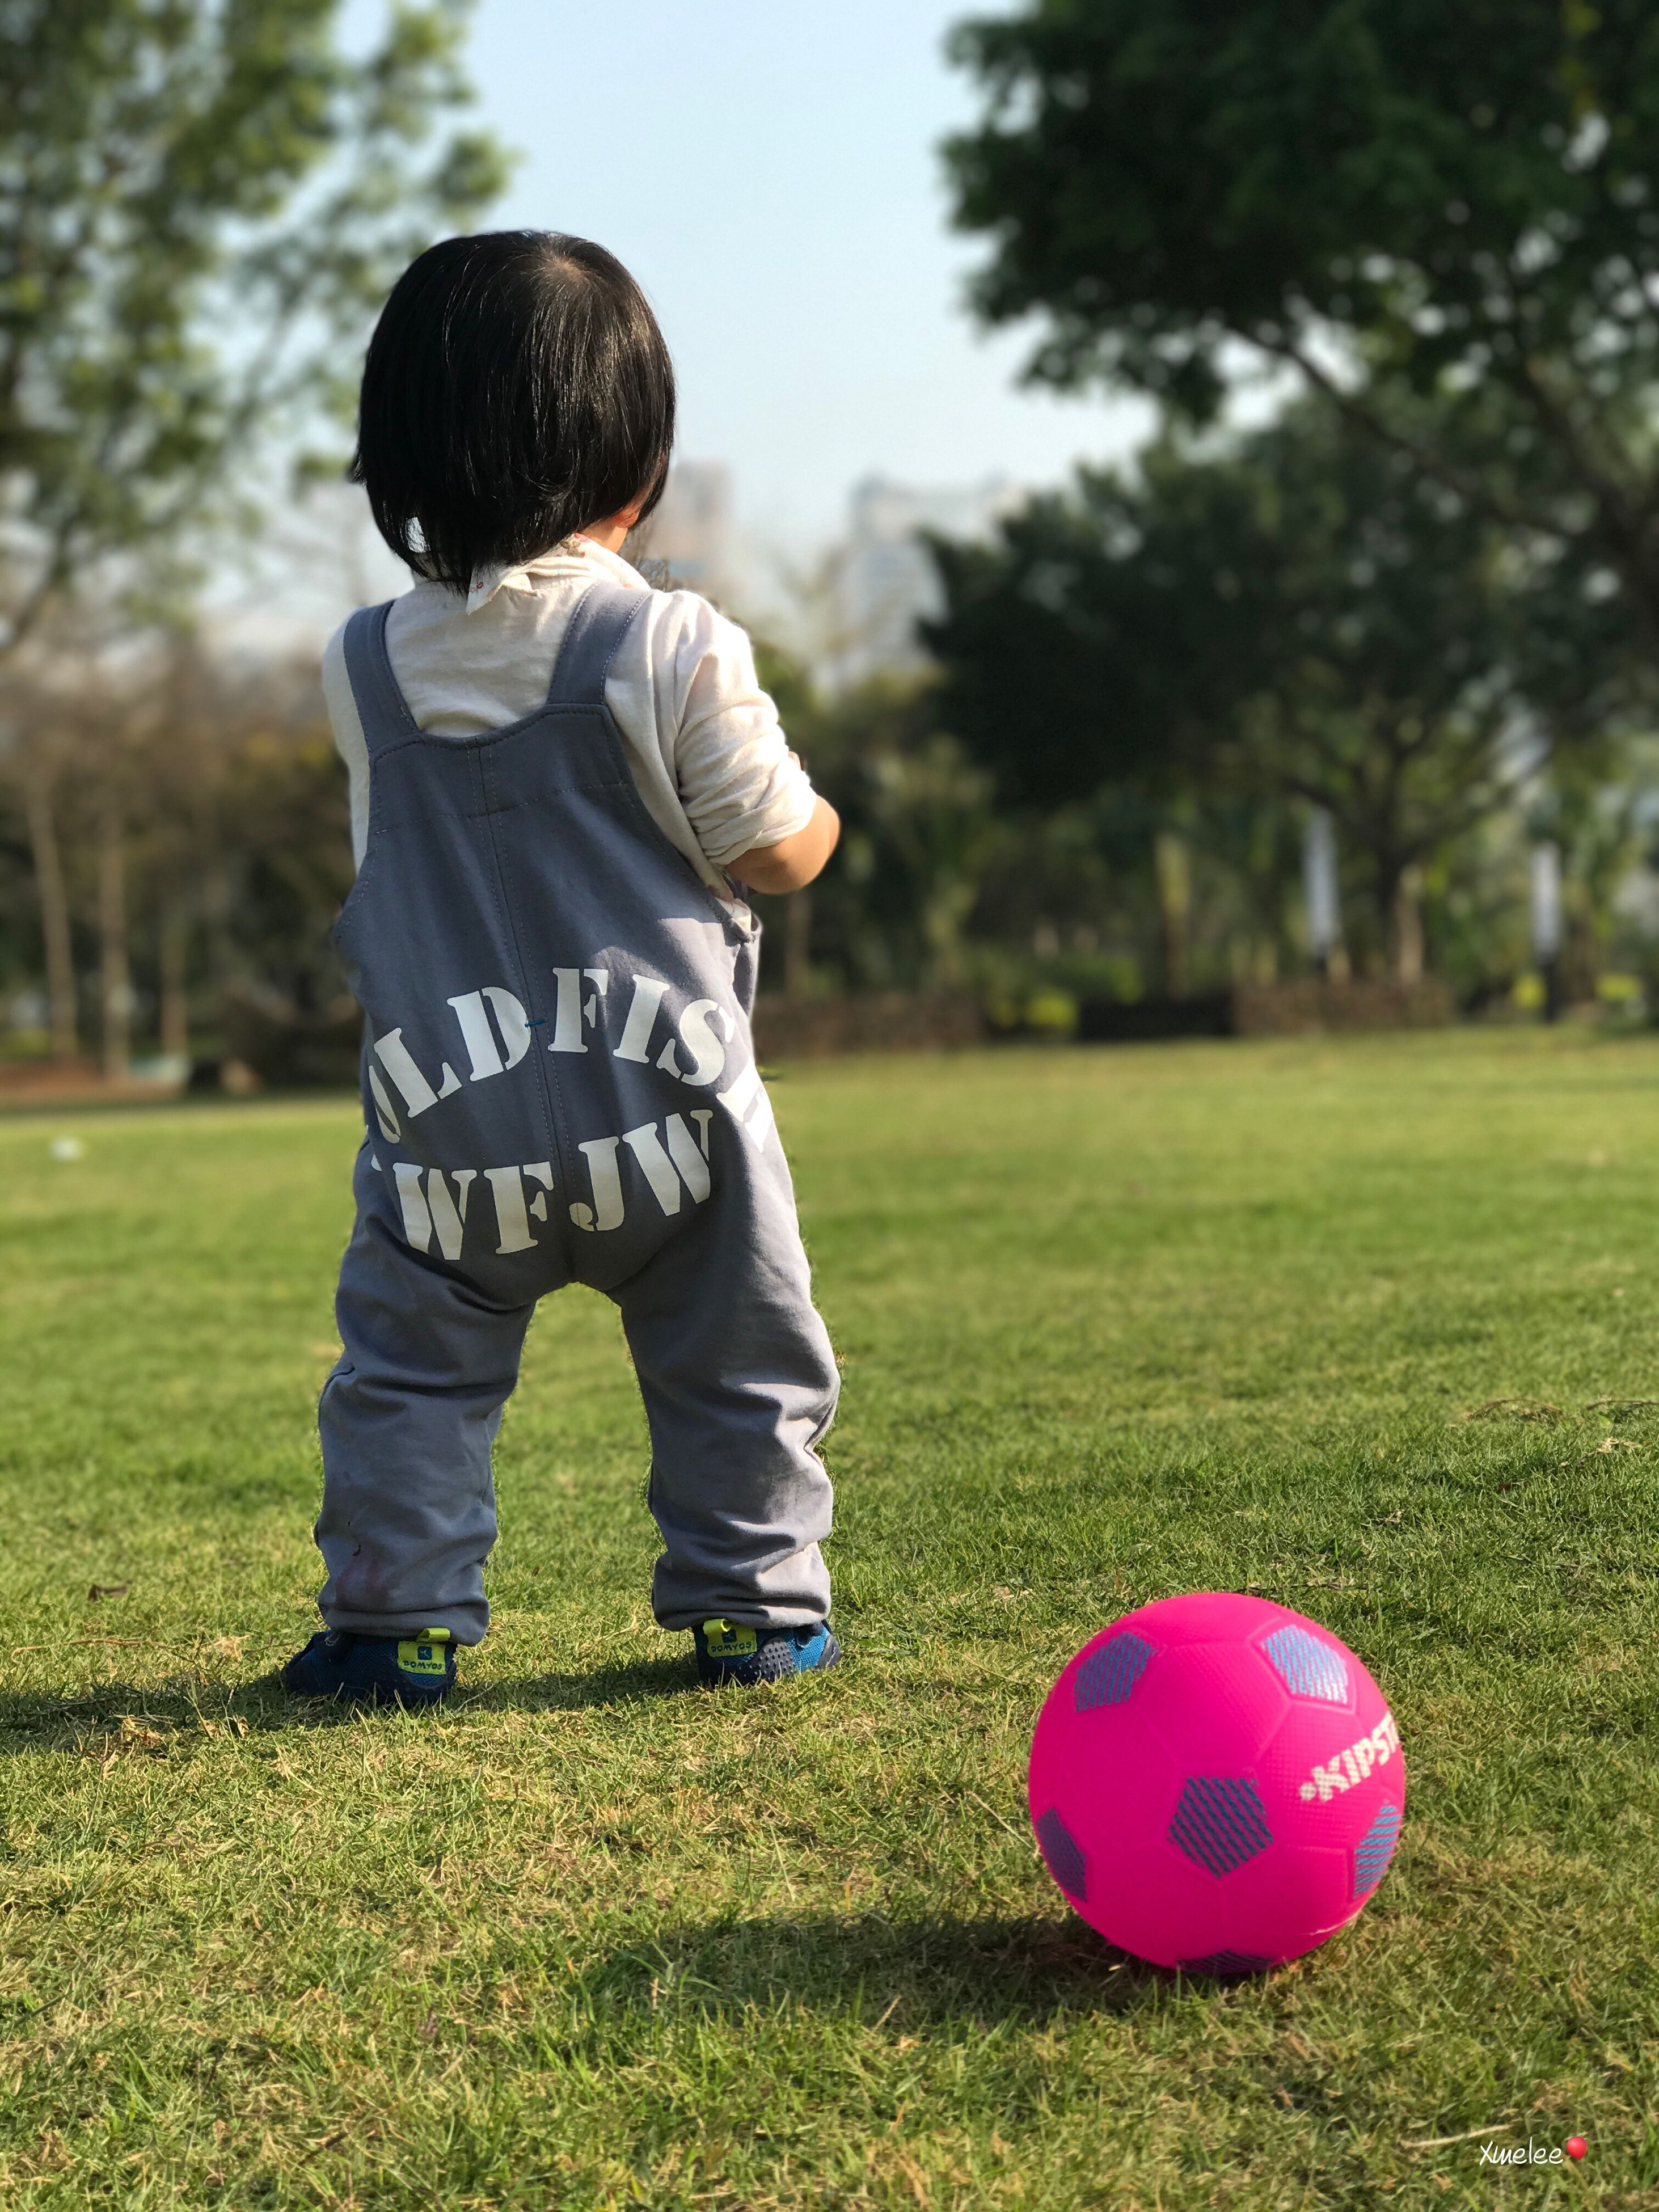 childhood, boys, grass, full length, one person, tree, one boy only, standing, casual clothing, rear view, playing, day, ball, park - man made space, child, outdoors, children only, real people, people